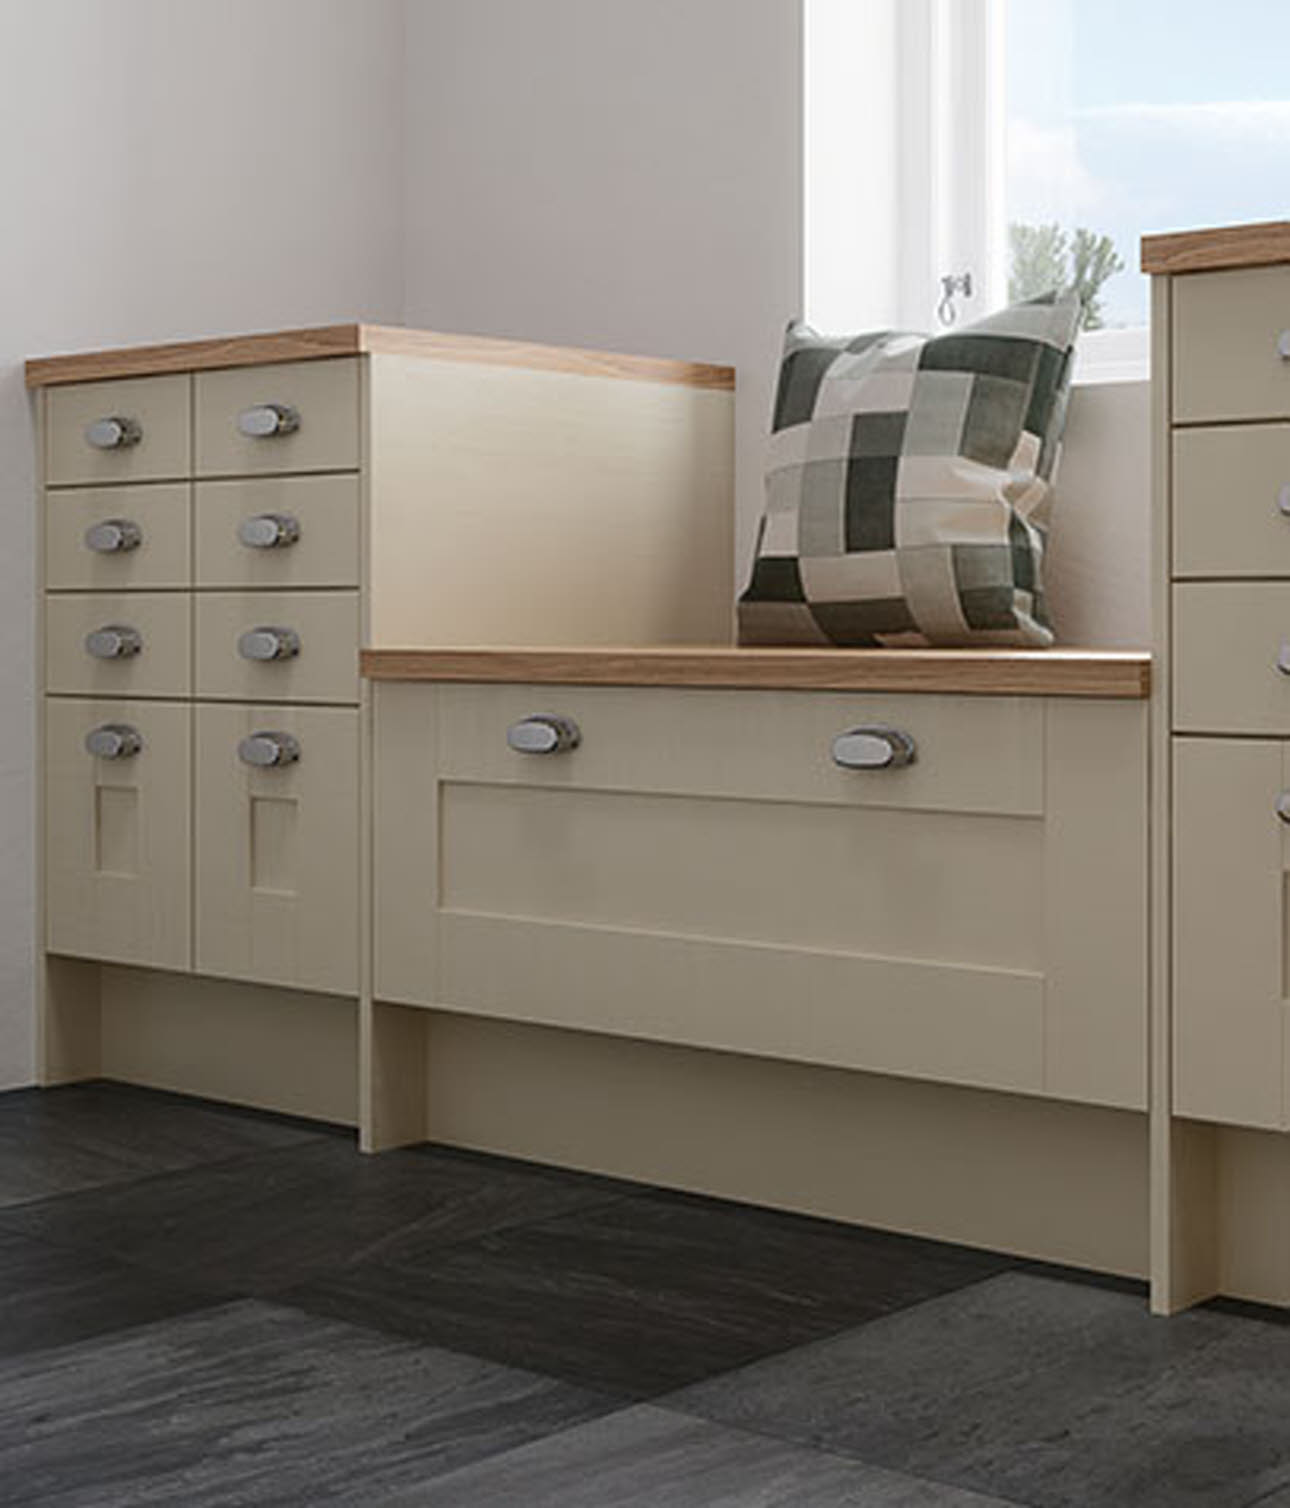 Winchester Cream Wood Kitchens Magnet Trade